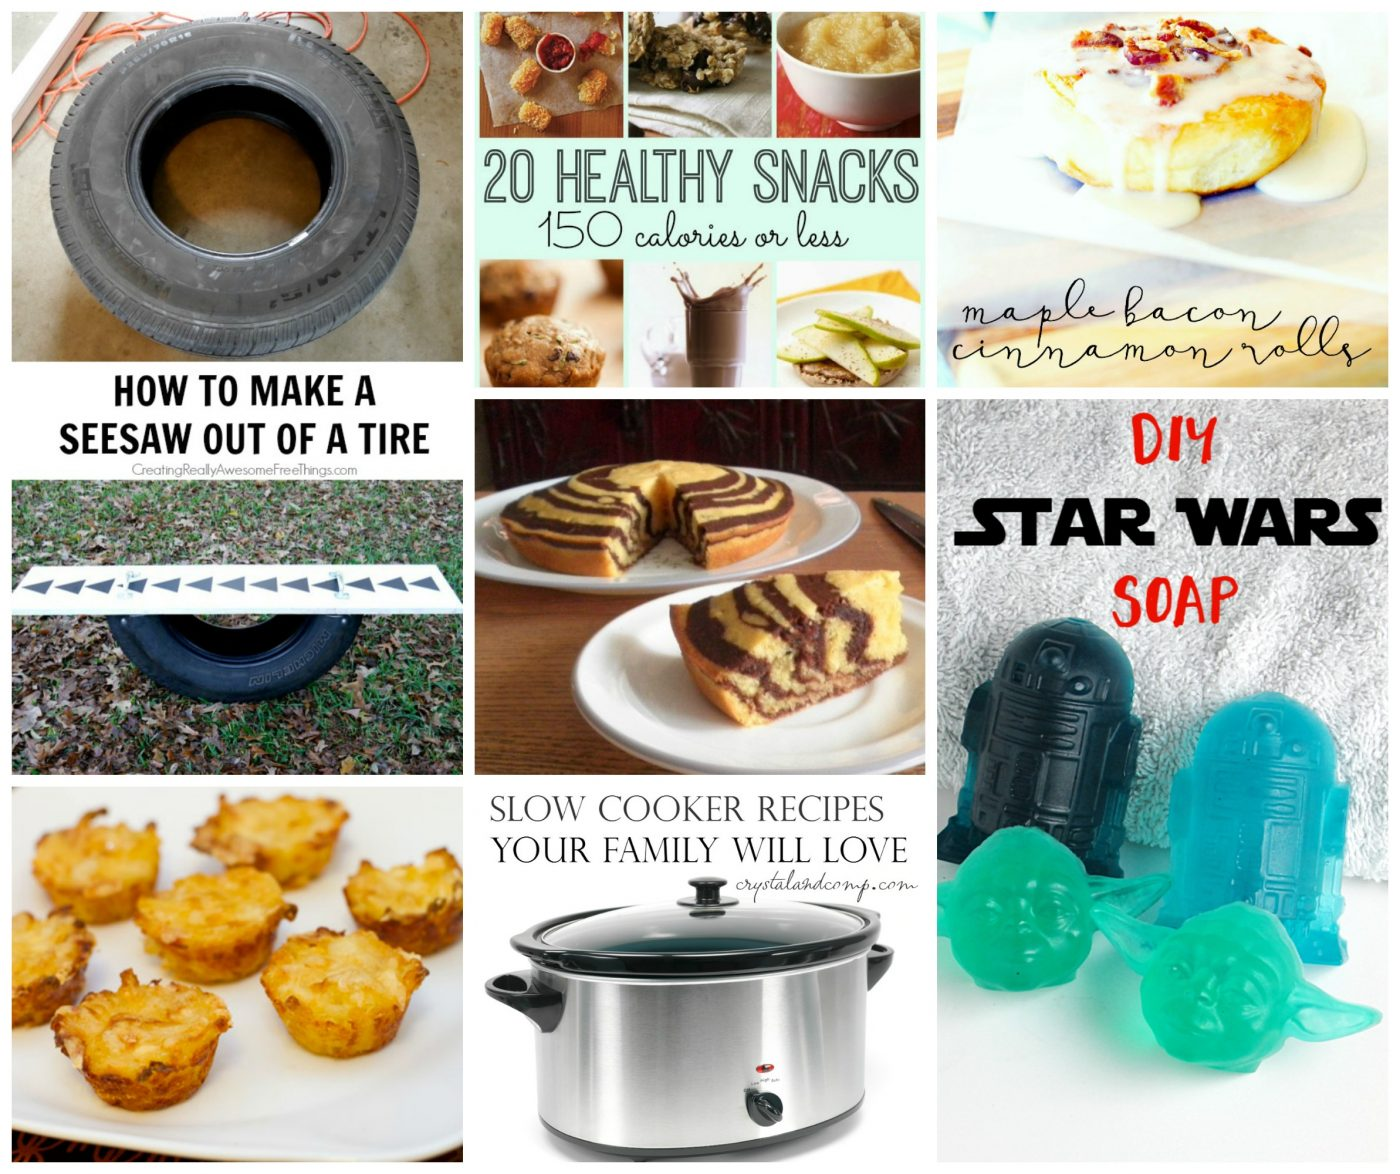 Kitchen Fun And Crafty Friday Link Party 167: Kitchen Fun & Crafty Friday Link Party #198